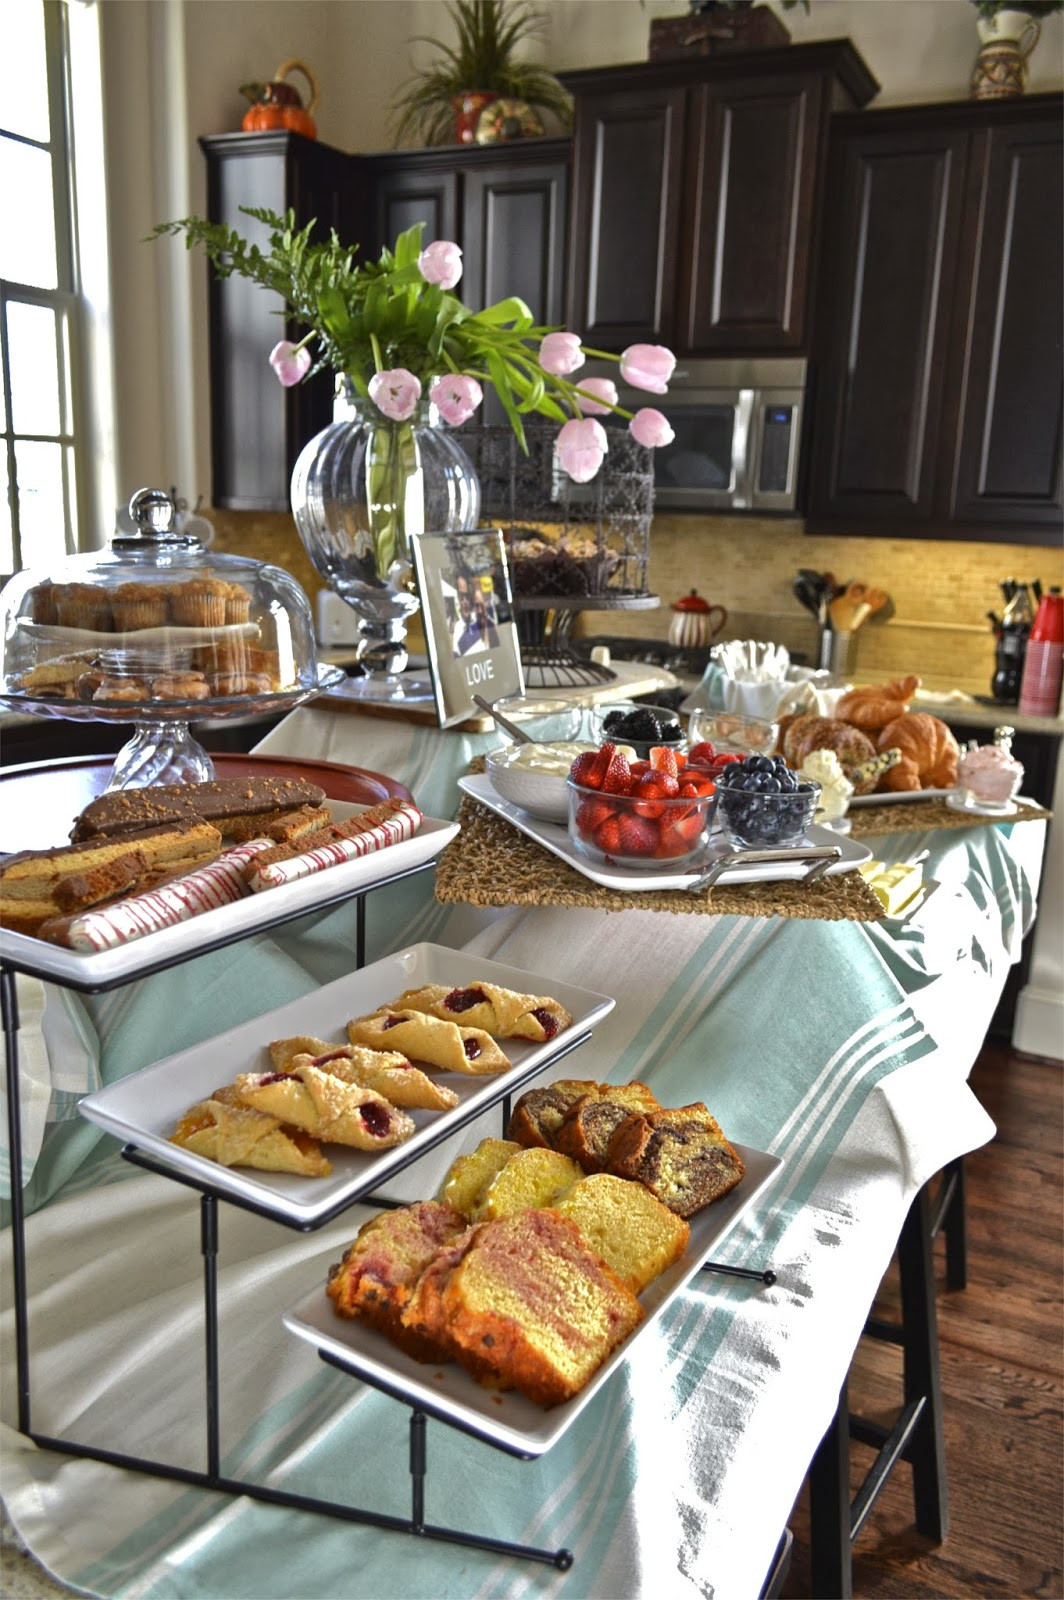 Birthday Brunch Ideas  Our House is Y alls House Saturday Brunch With The Girls